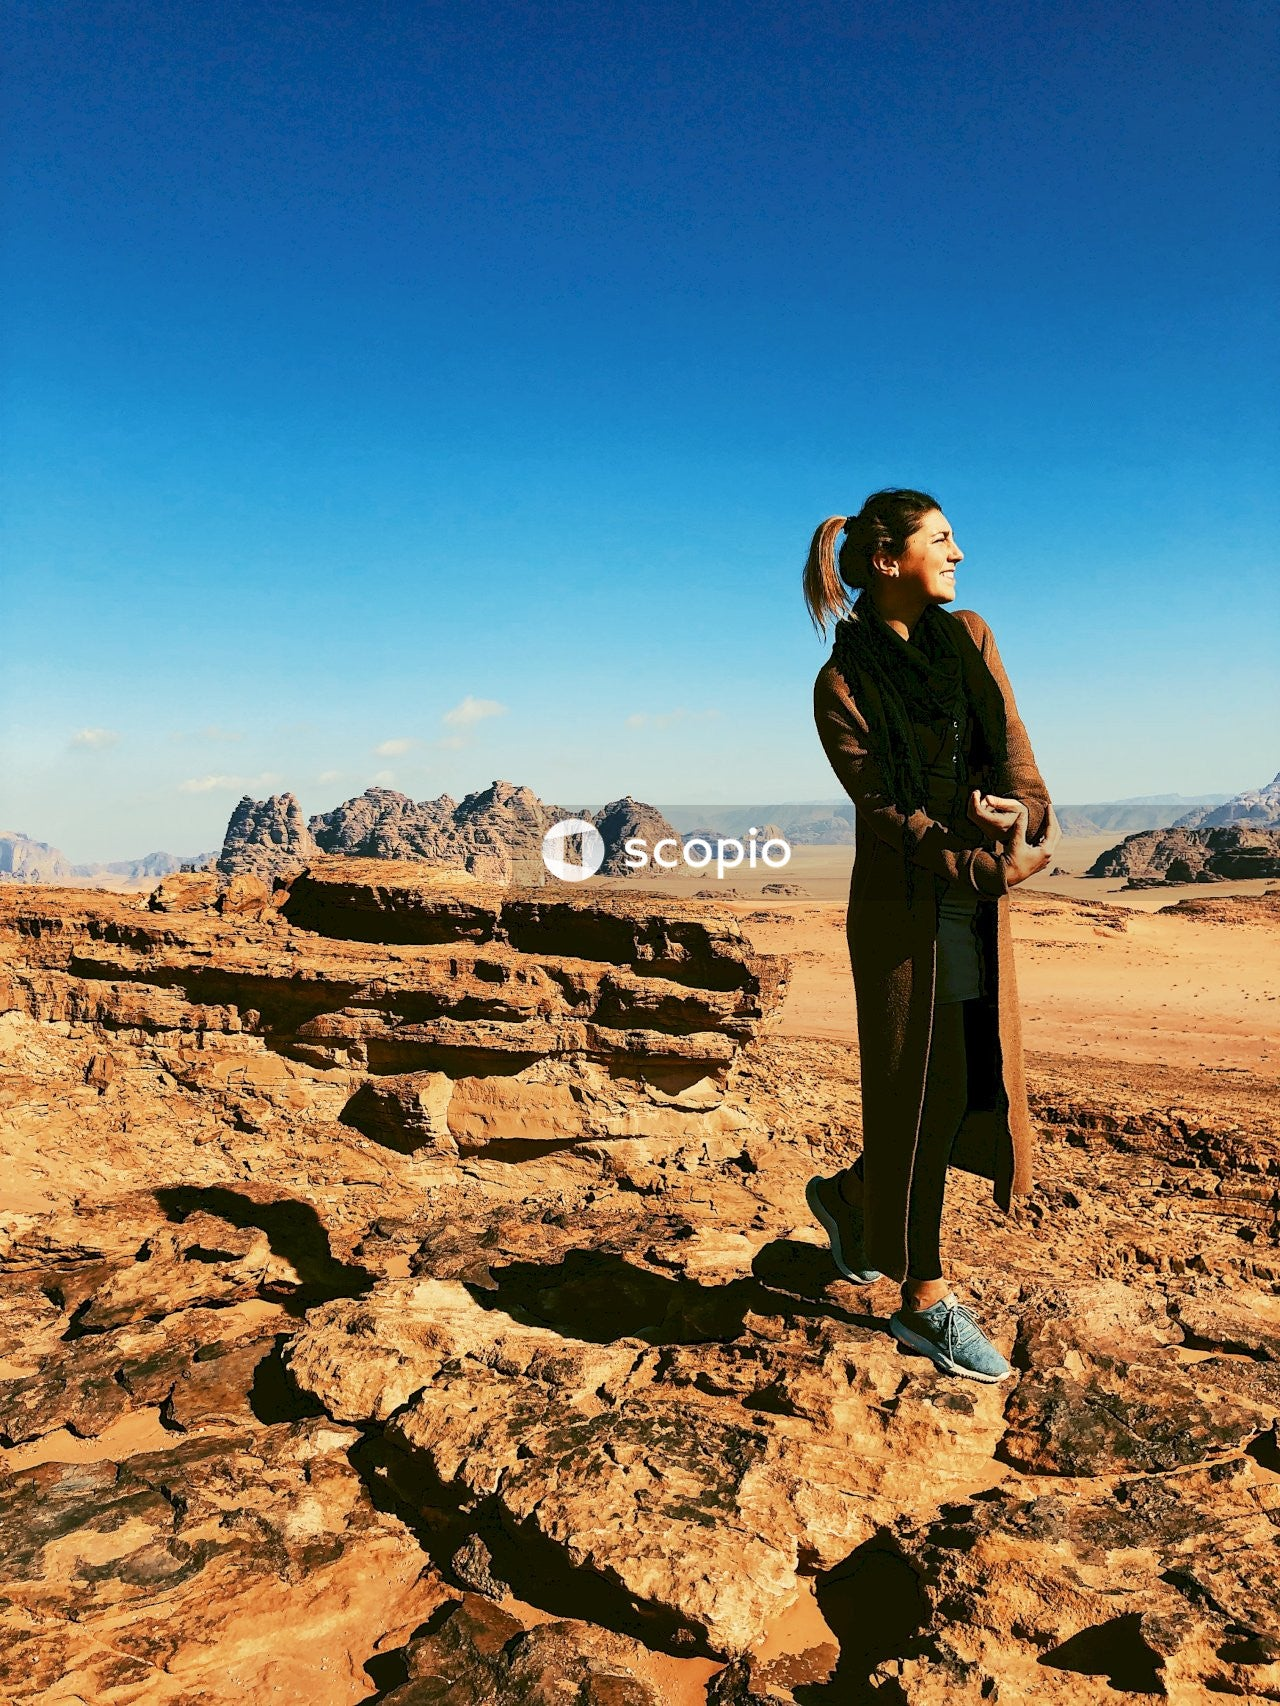 Woman in black coat standing on rocky hill